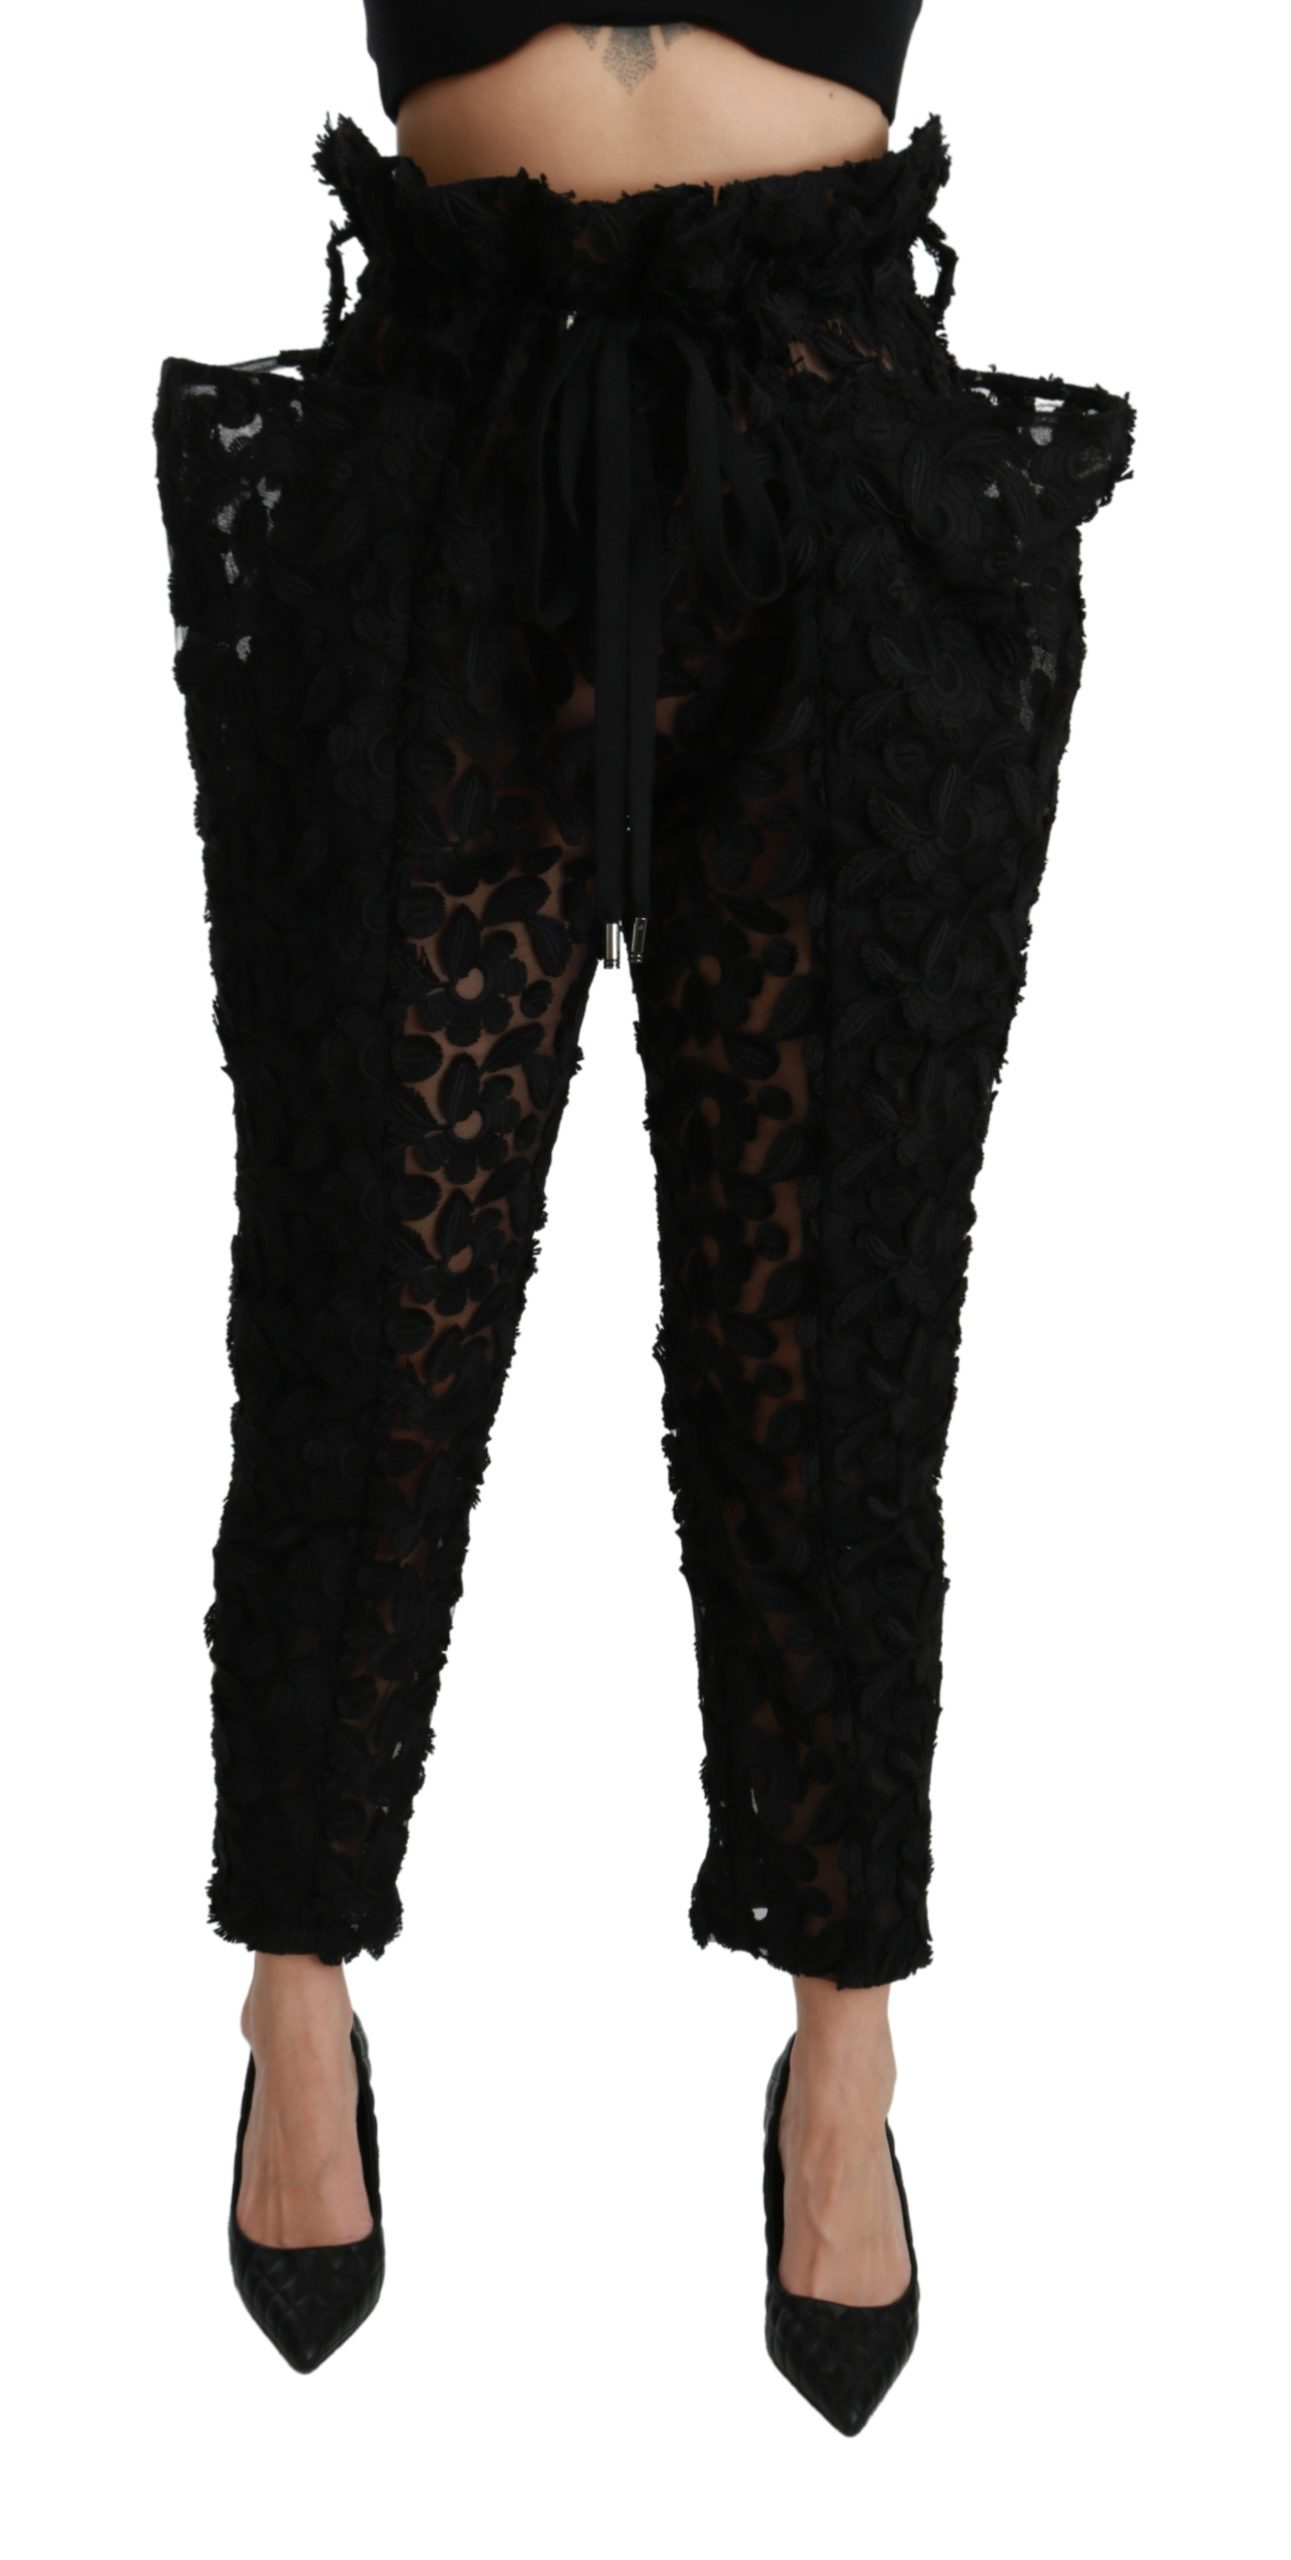 Dolce & Gabbana Women's Floral Lace Tapered High Waist Trouser Black PAN70946 - IT40|S